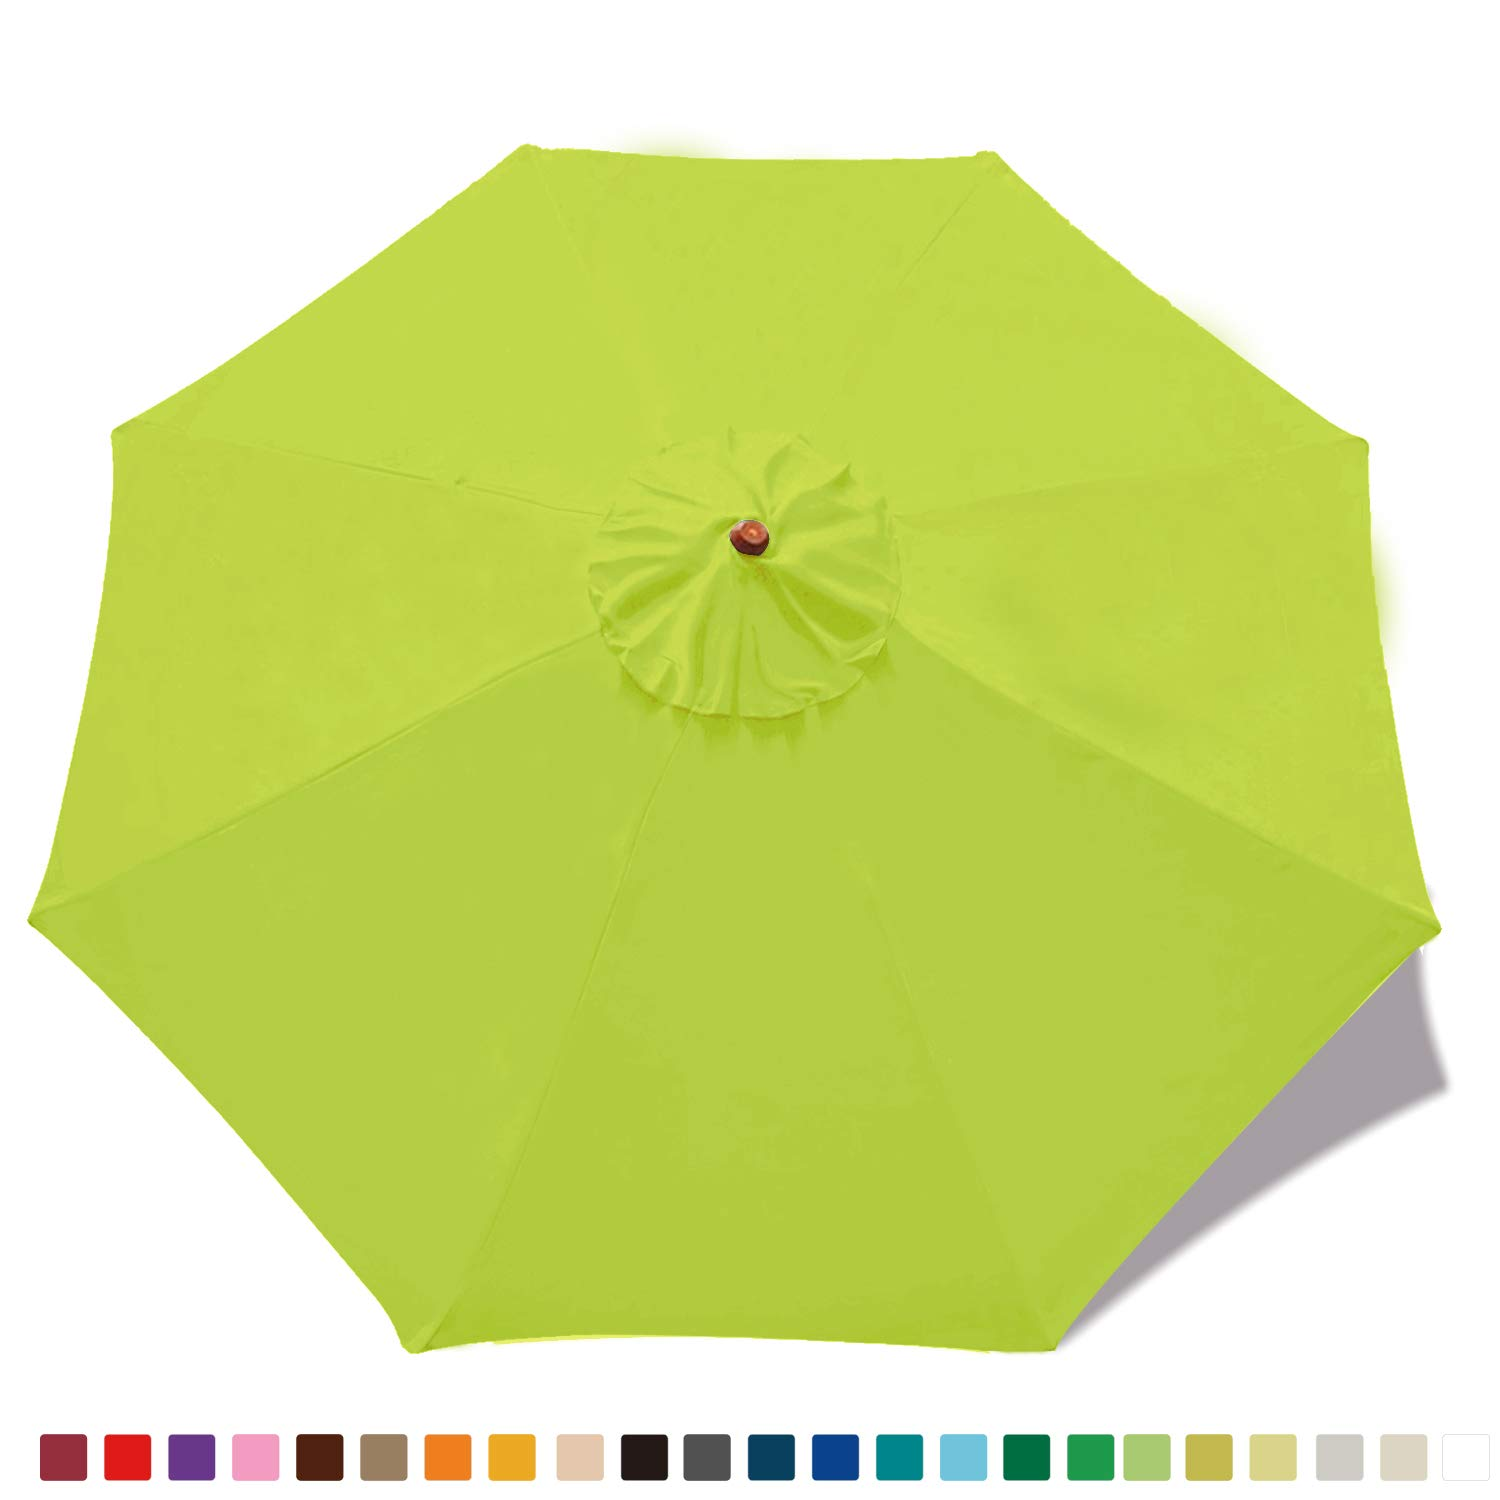 (23+ colors) 9ft Market Umbrella Replacement Canopy 8 Ribs (Lemon green)